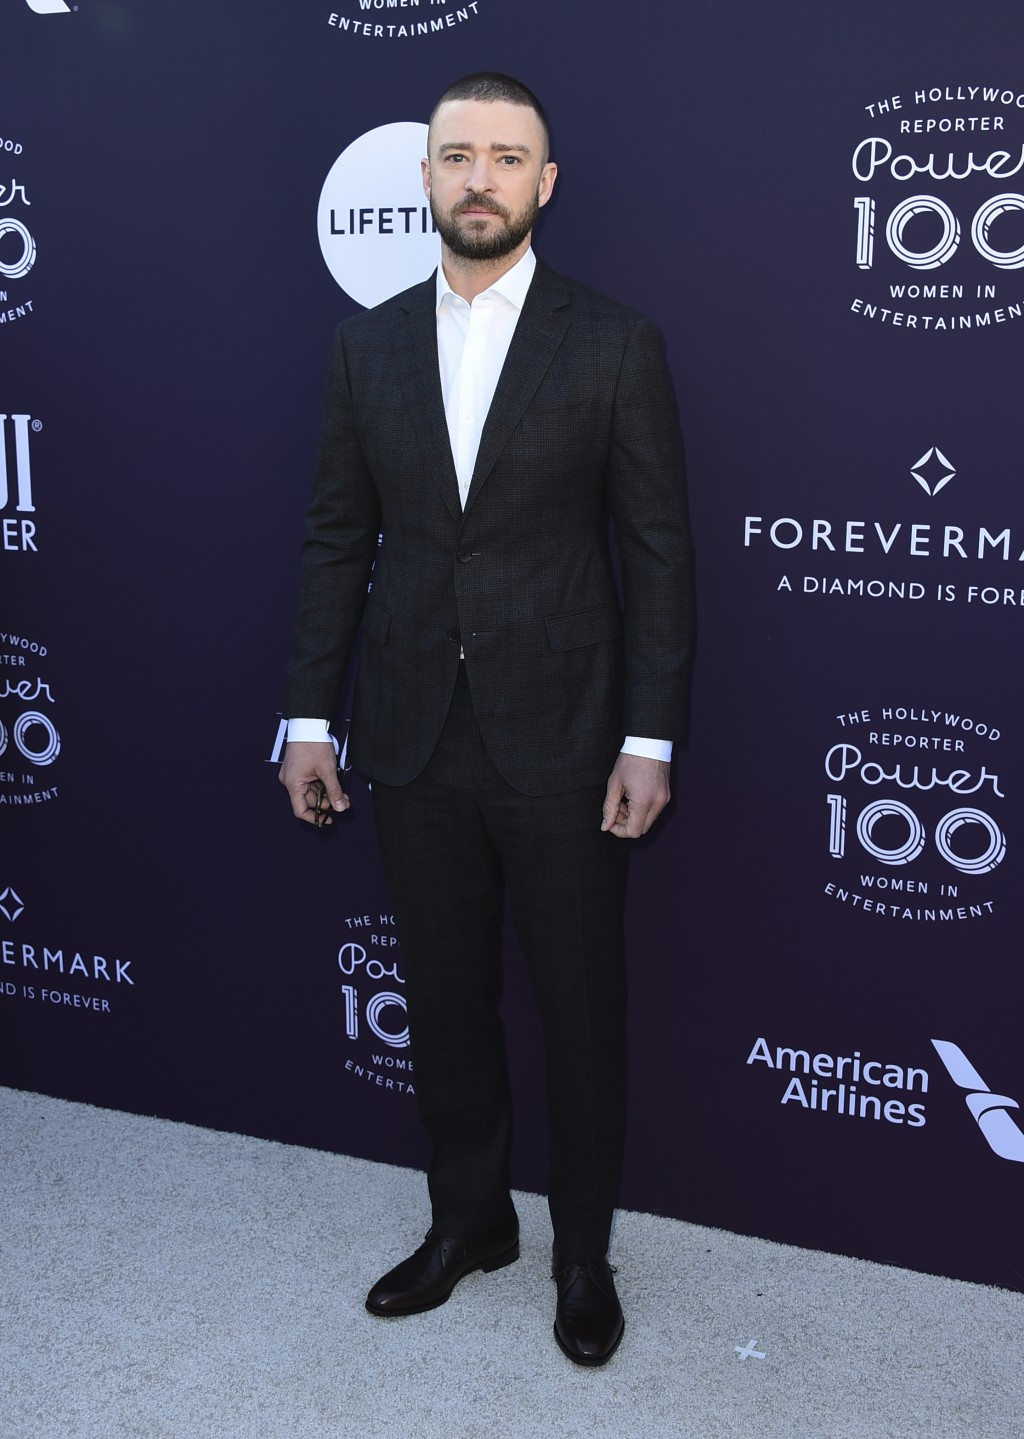 Justin Timberlake arrives at The Hollywood Reporter's Women in Entertainment Breakfast at Milk Studios on Wednesday, Dec. 6, 2017, in Los Angeles. (Ph